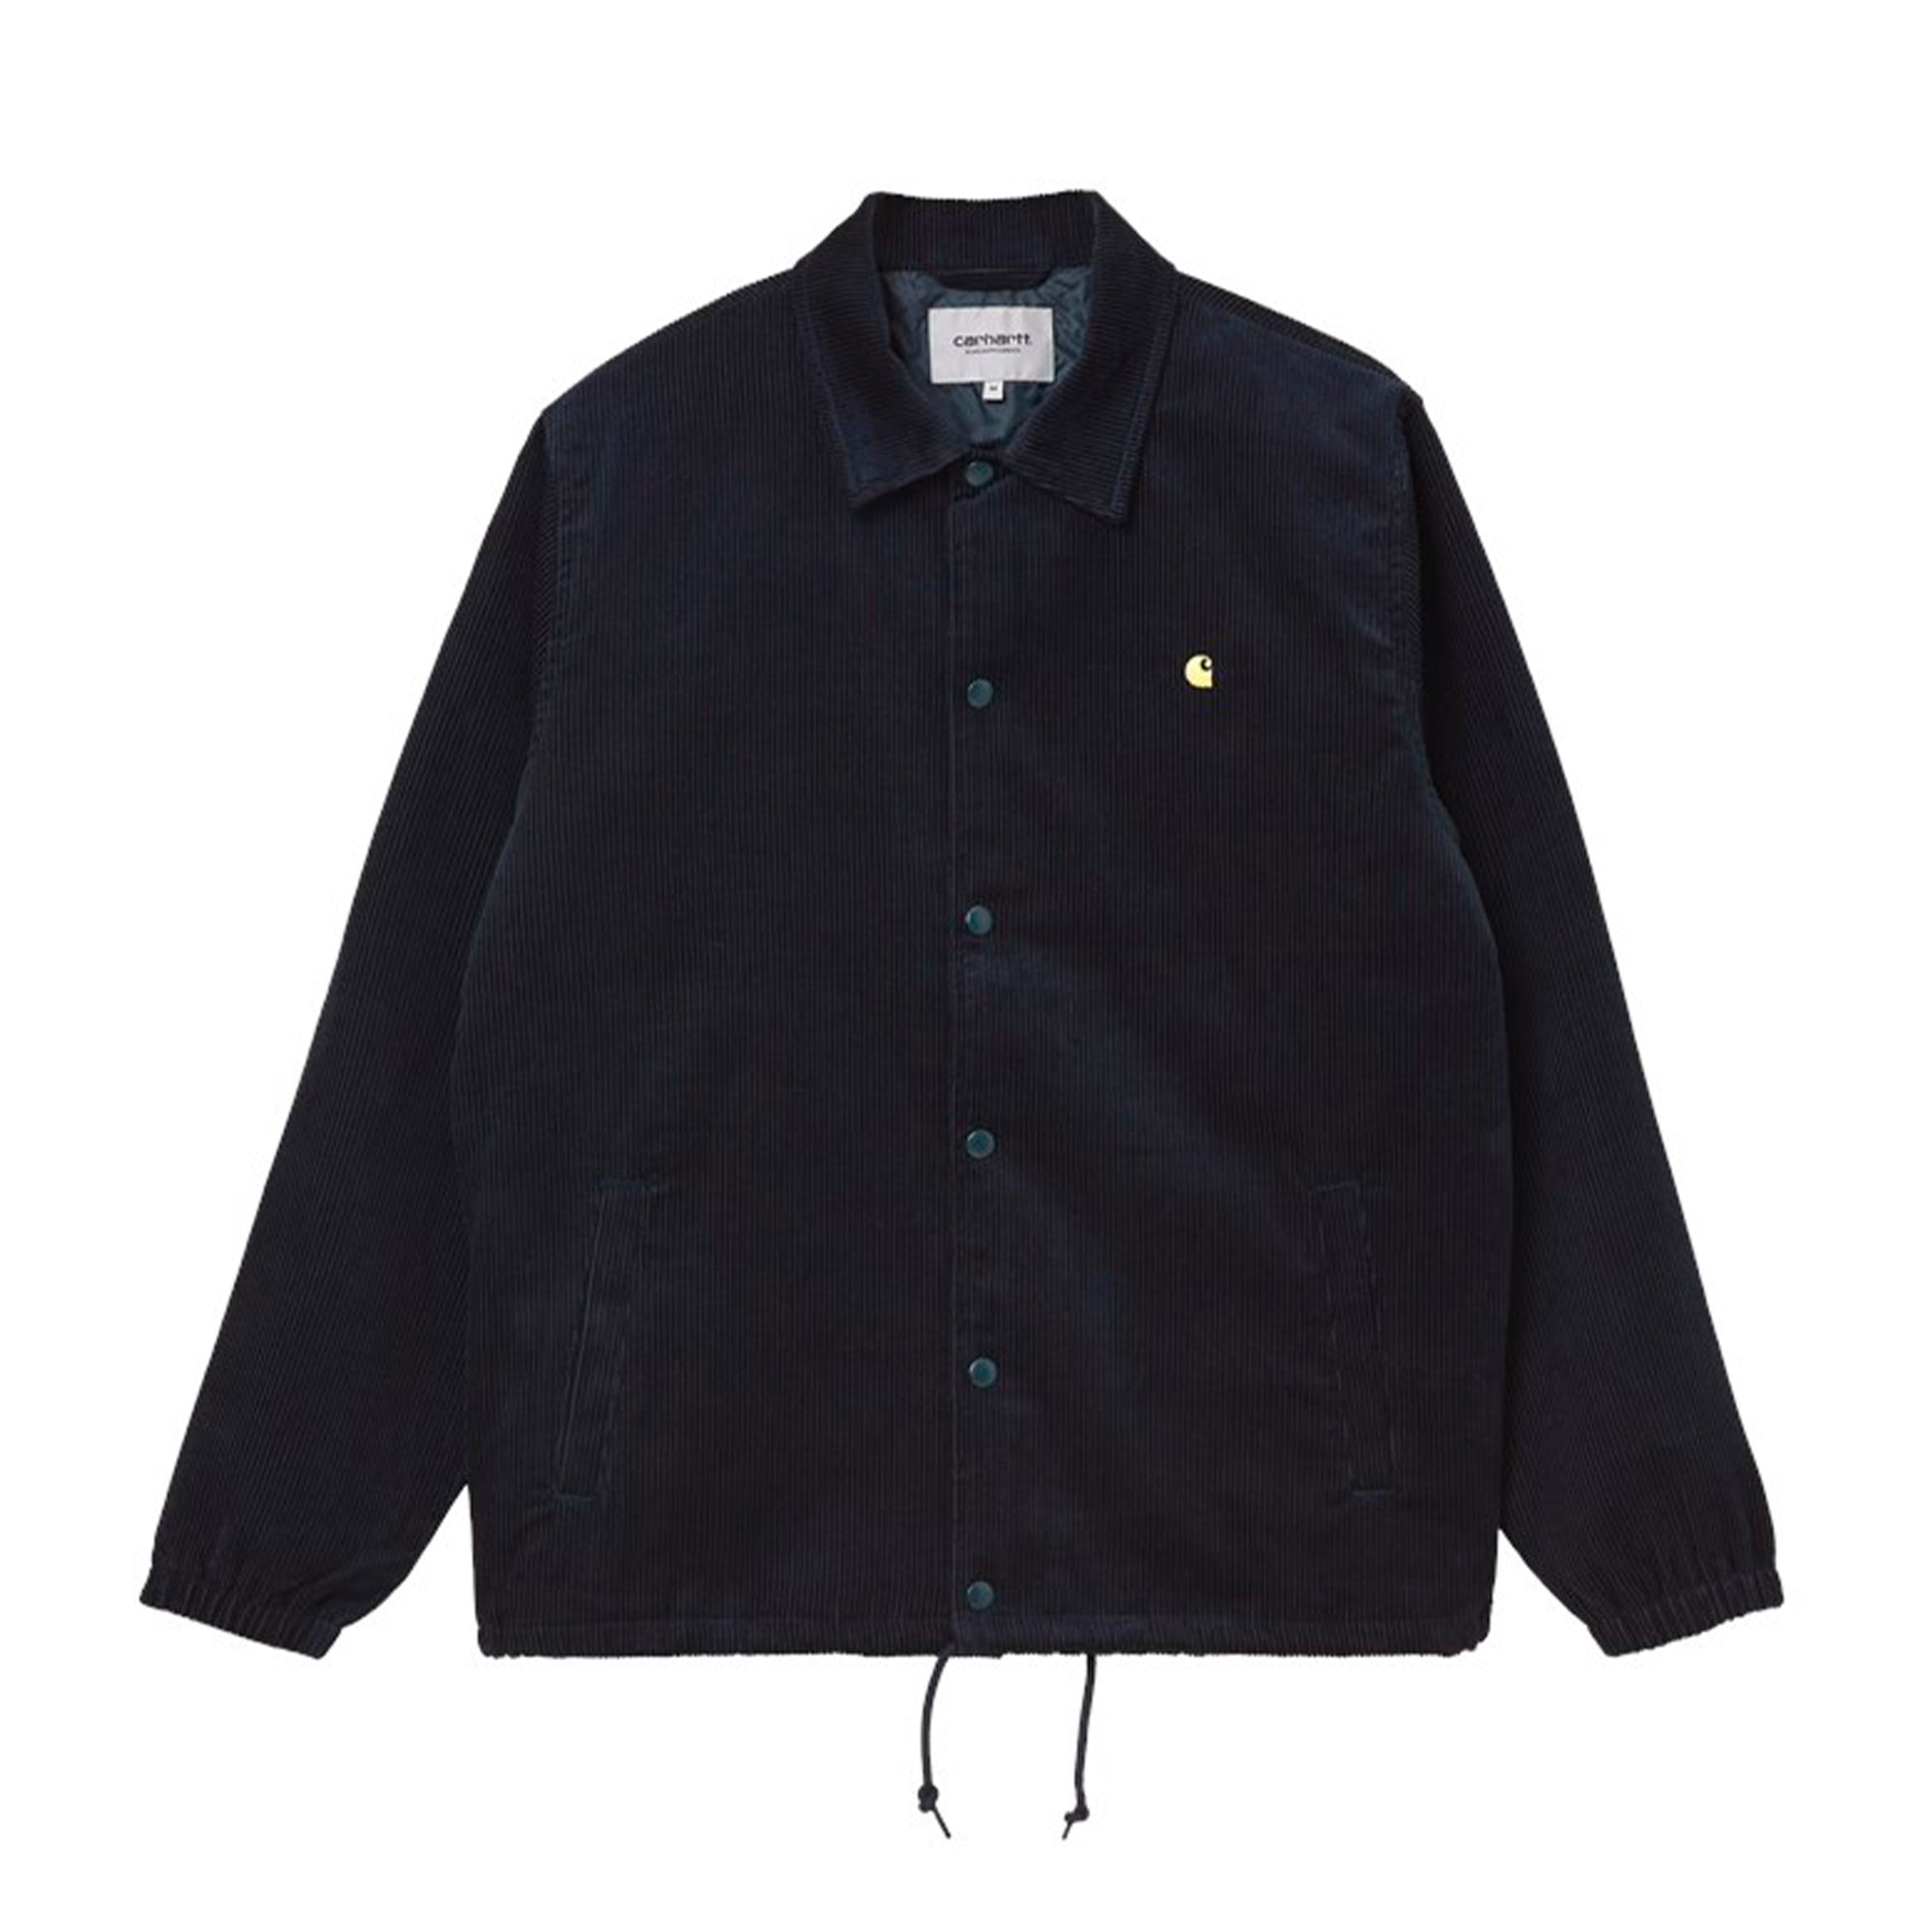 Carhartt WIP Corduroy Coach Jacket: Dark Navy / Limoncello - The Union Project